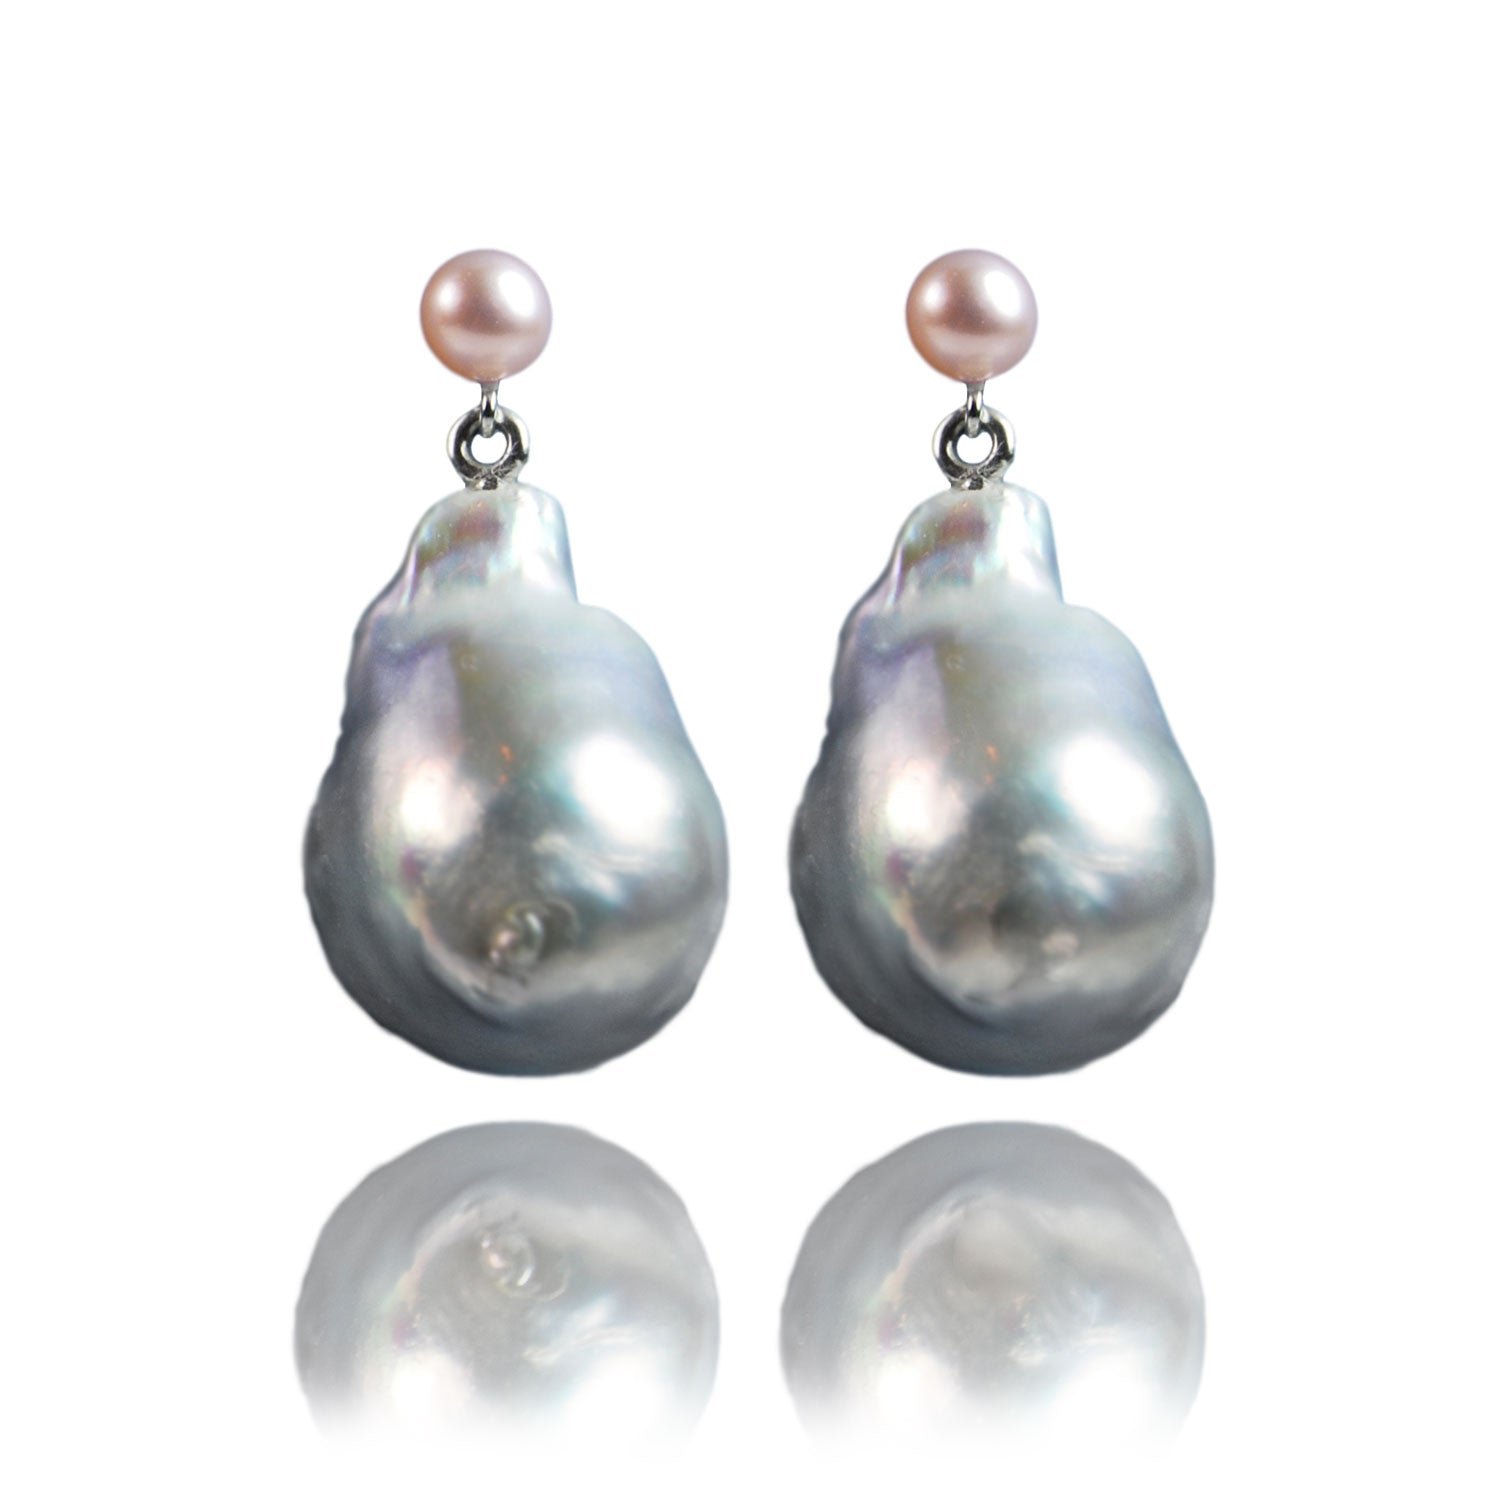 Baroque Shape Large Freshwater Pearl Drop on Petite Pearl Stud